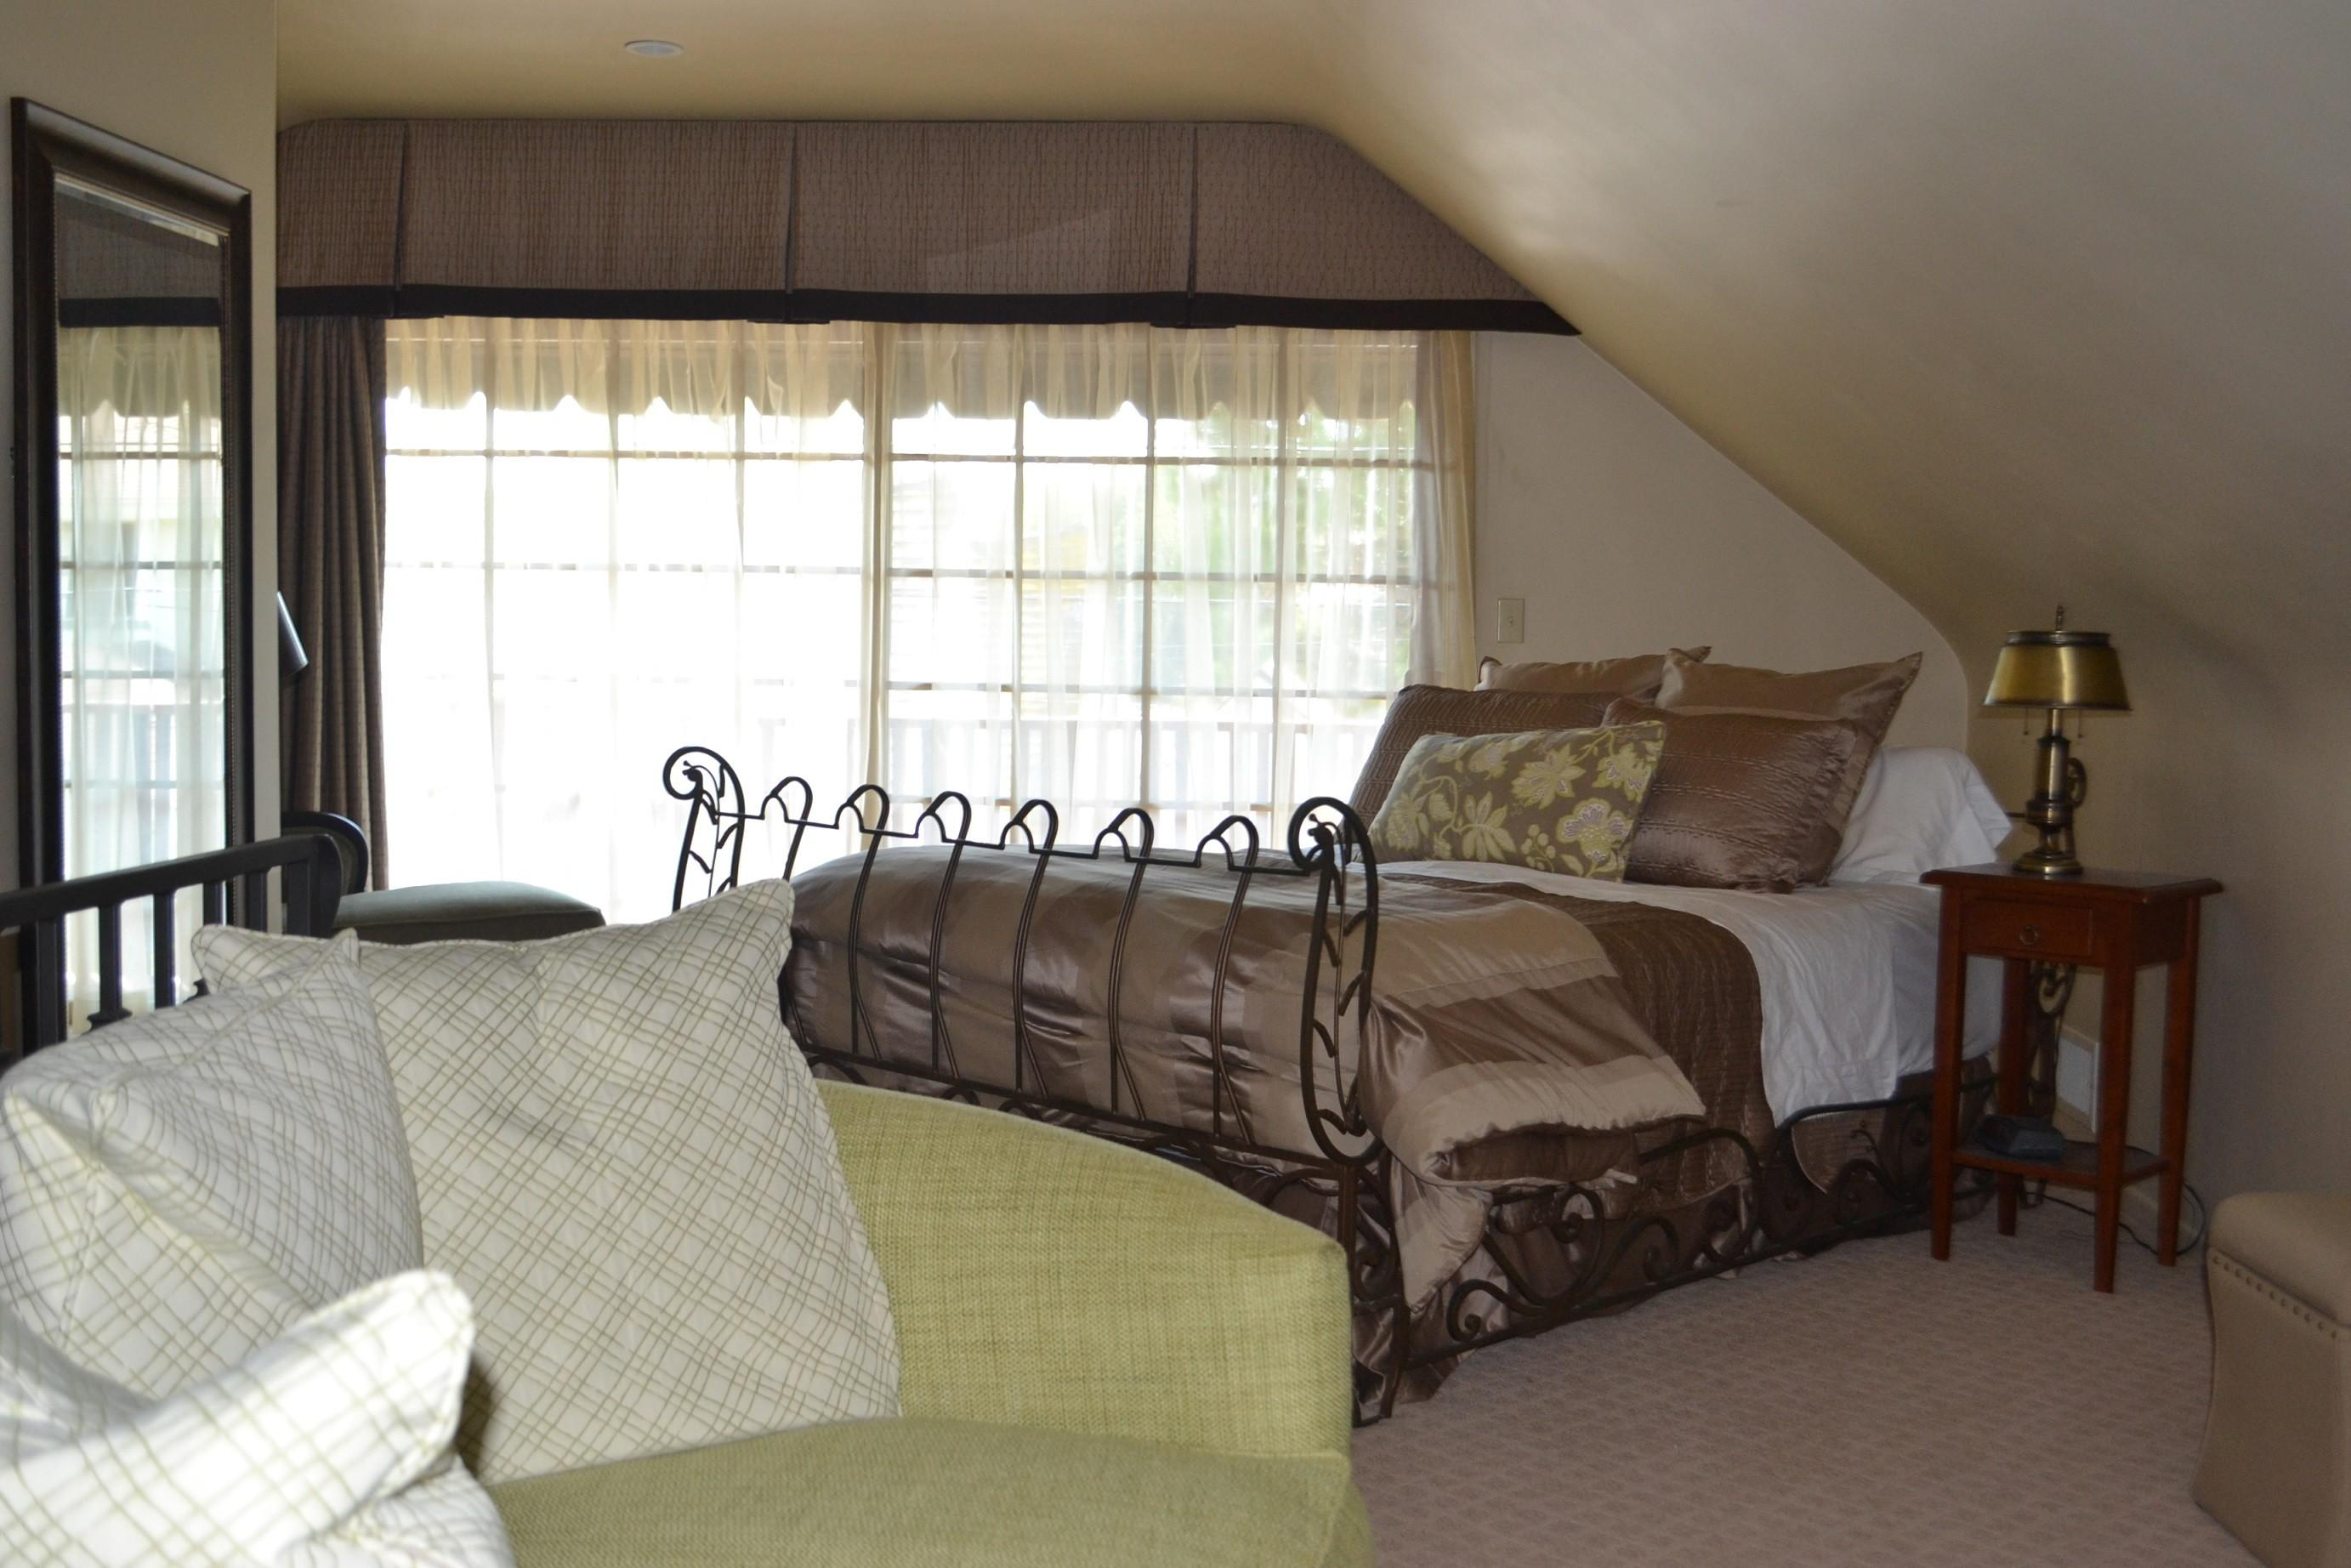 Bedroom Cool Slanted Ceiling Ideas Decorating